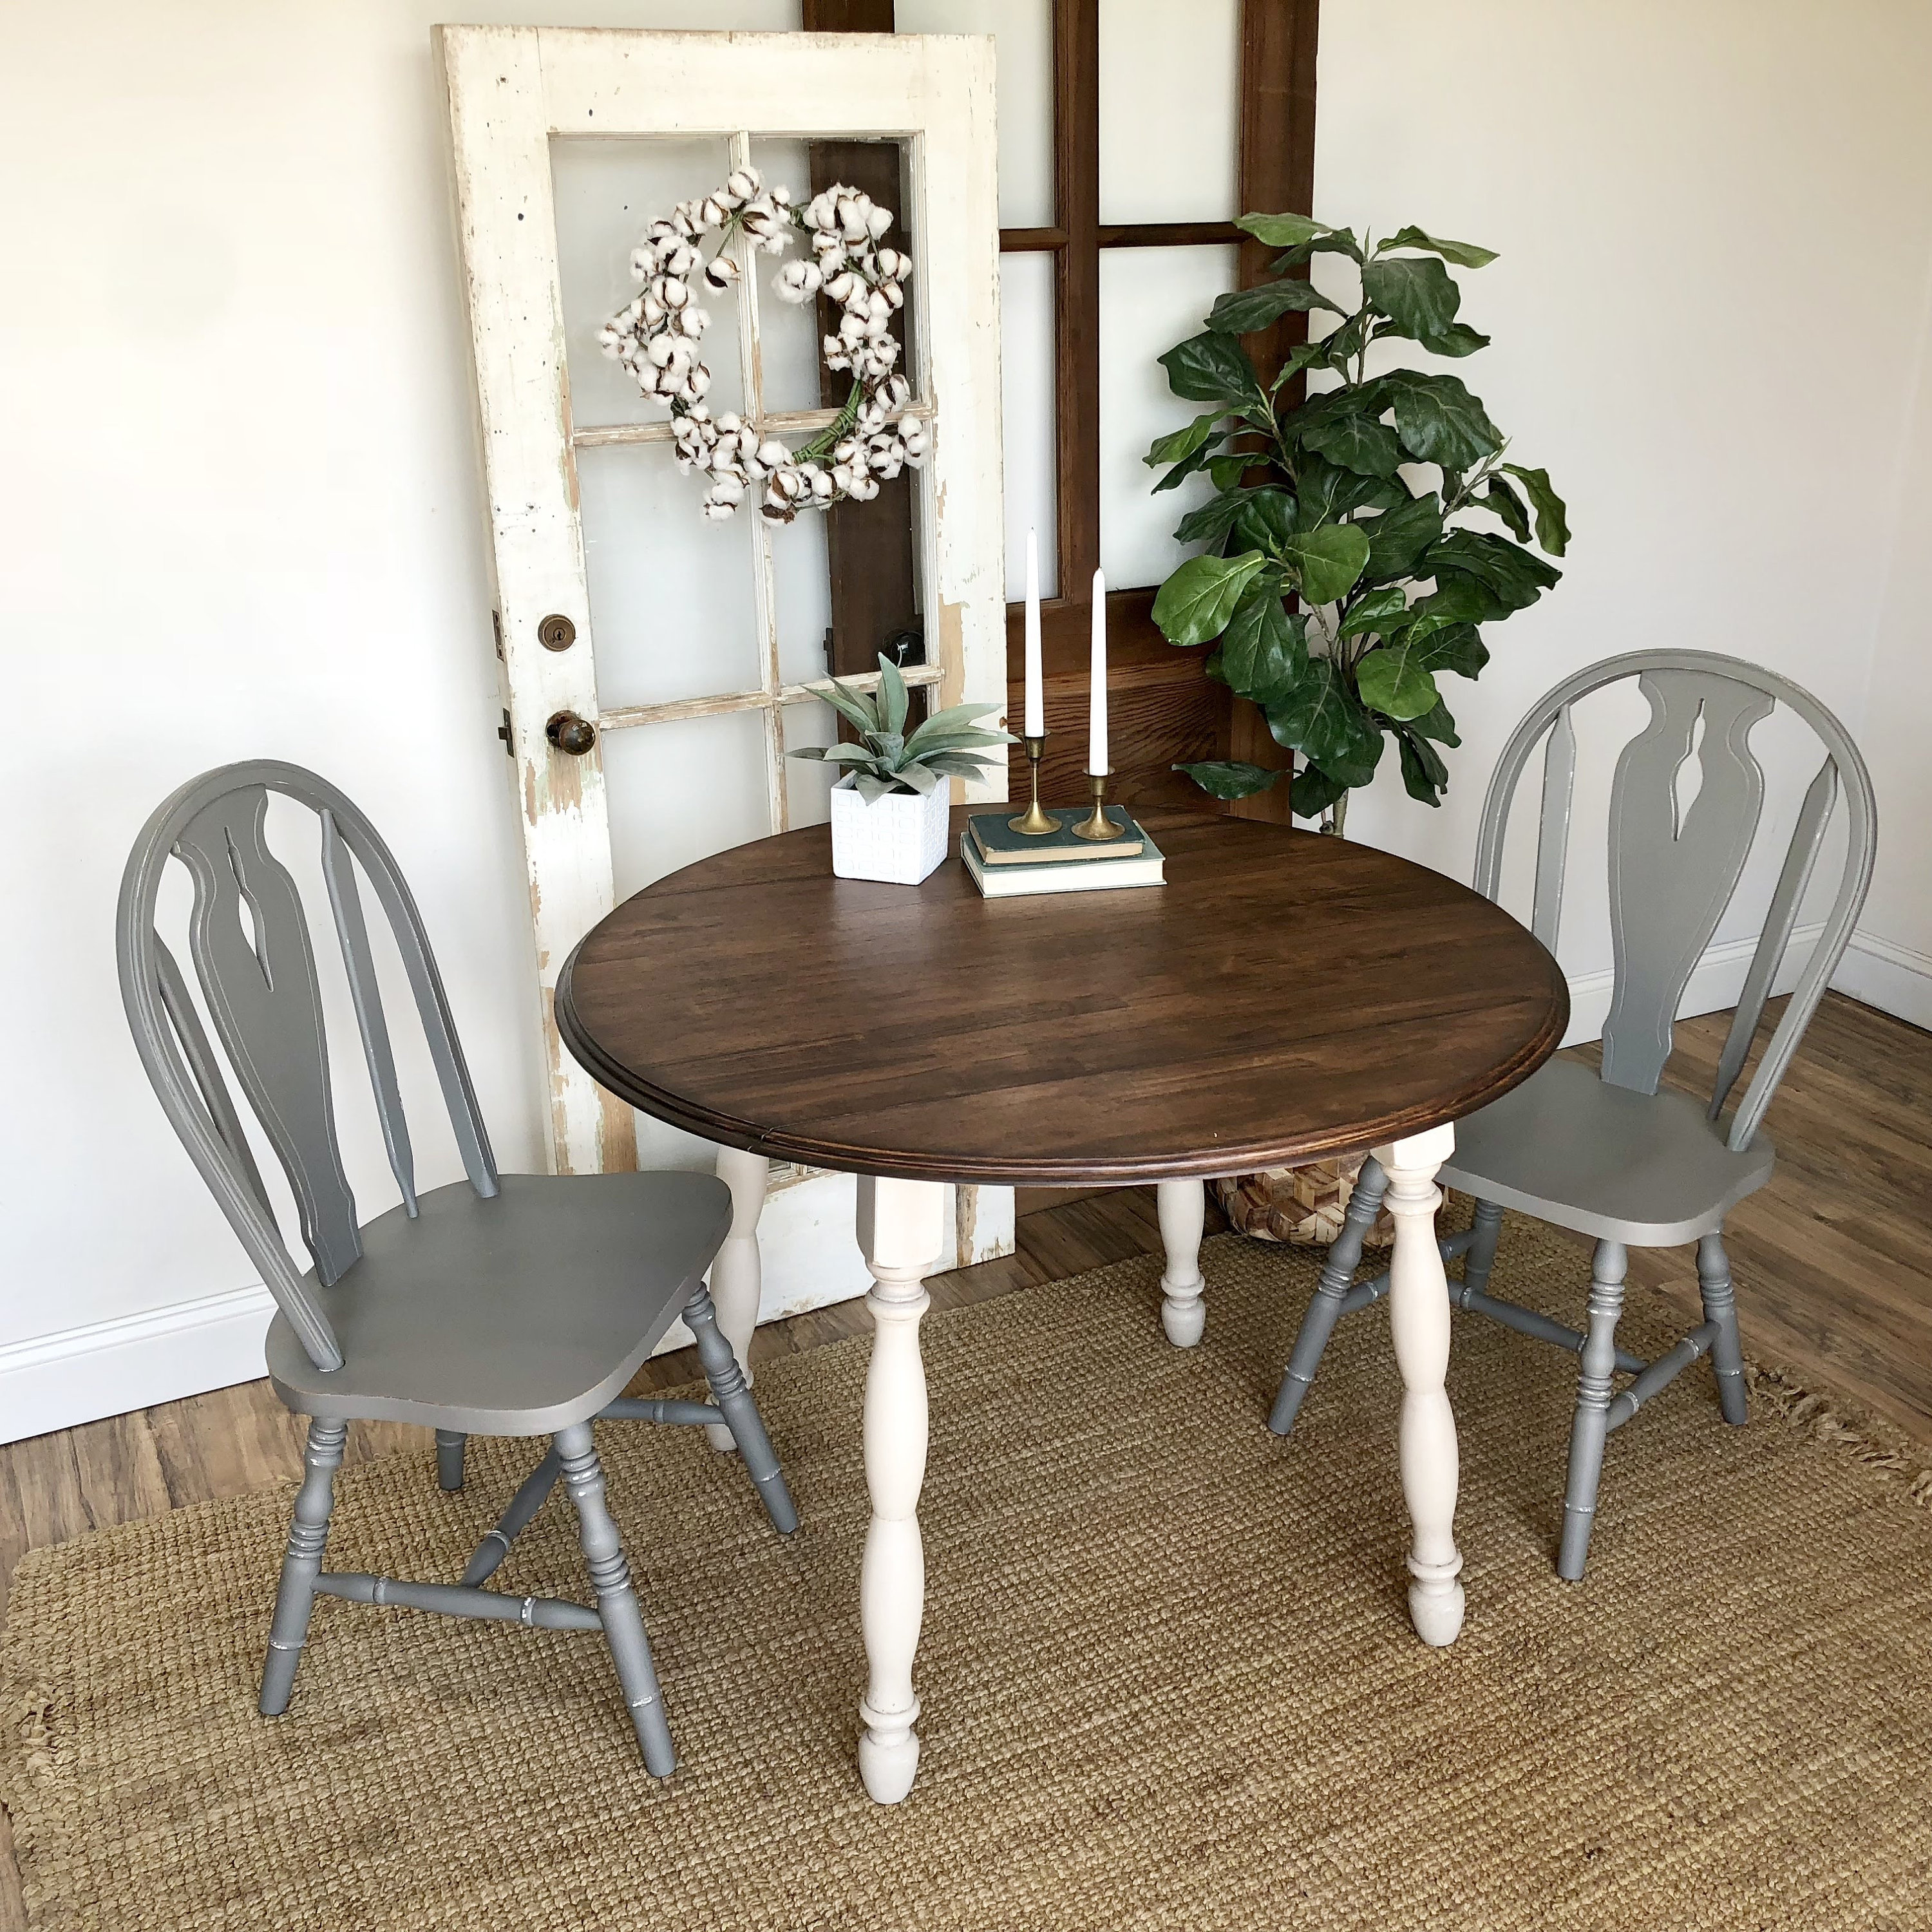 Round Table And Chairs   Farmhouse Furniture   Blue Dining Chairs   Drop Leaf  Table   Round Table   Vintage Furniture